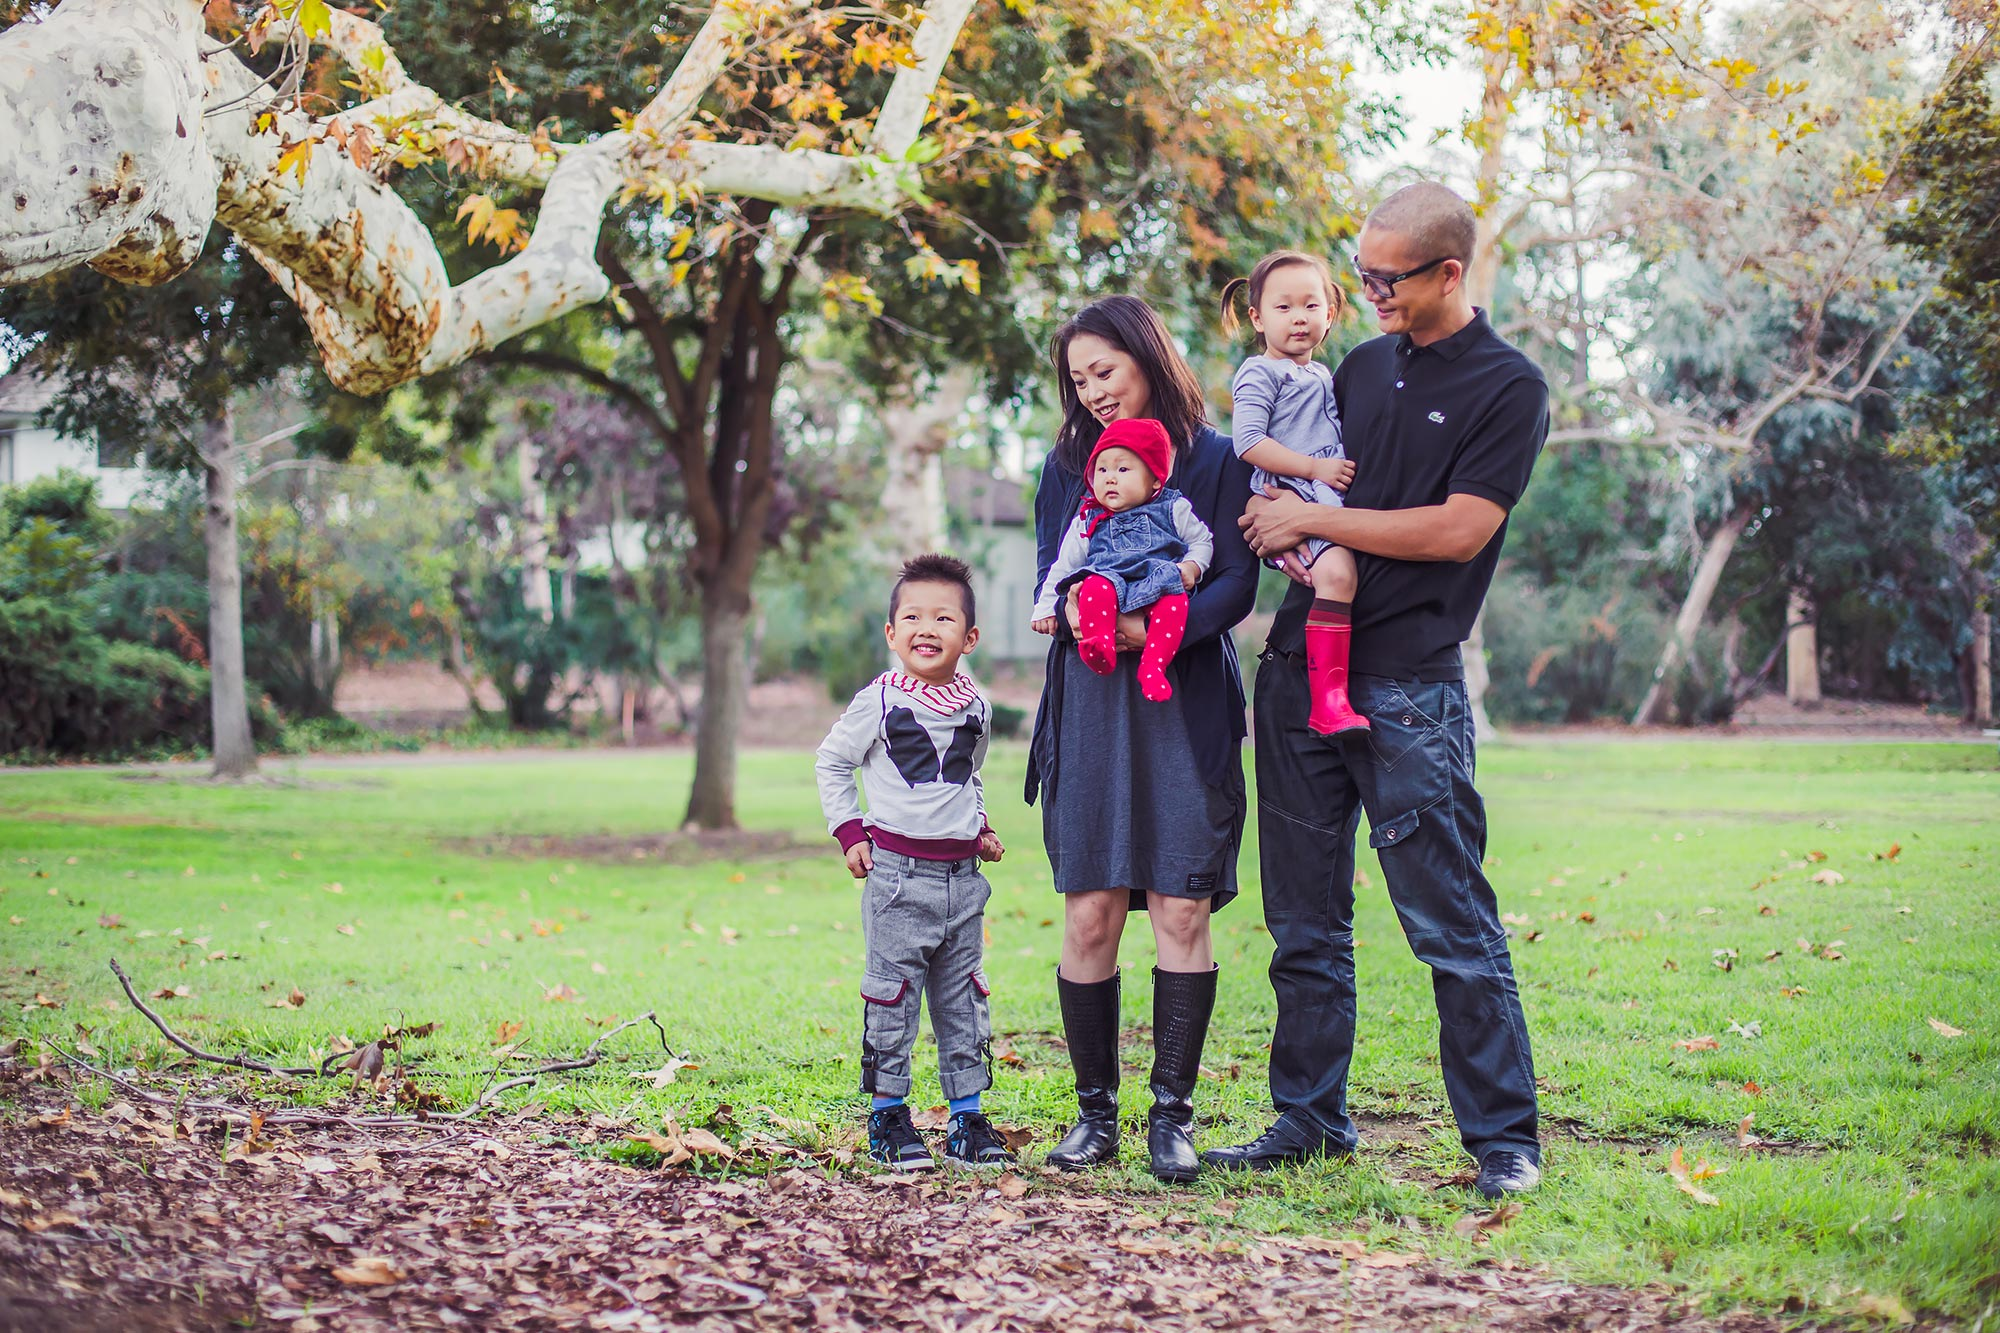 Ipswich Family Portrait | Stephen Grant Photography